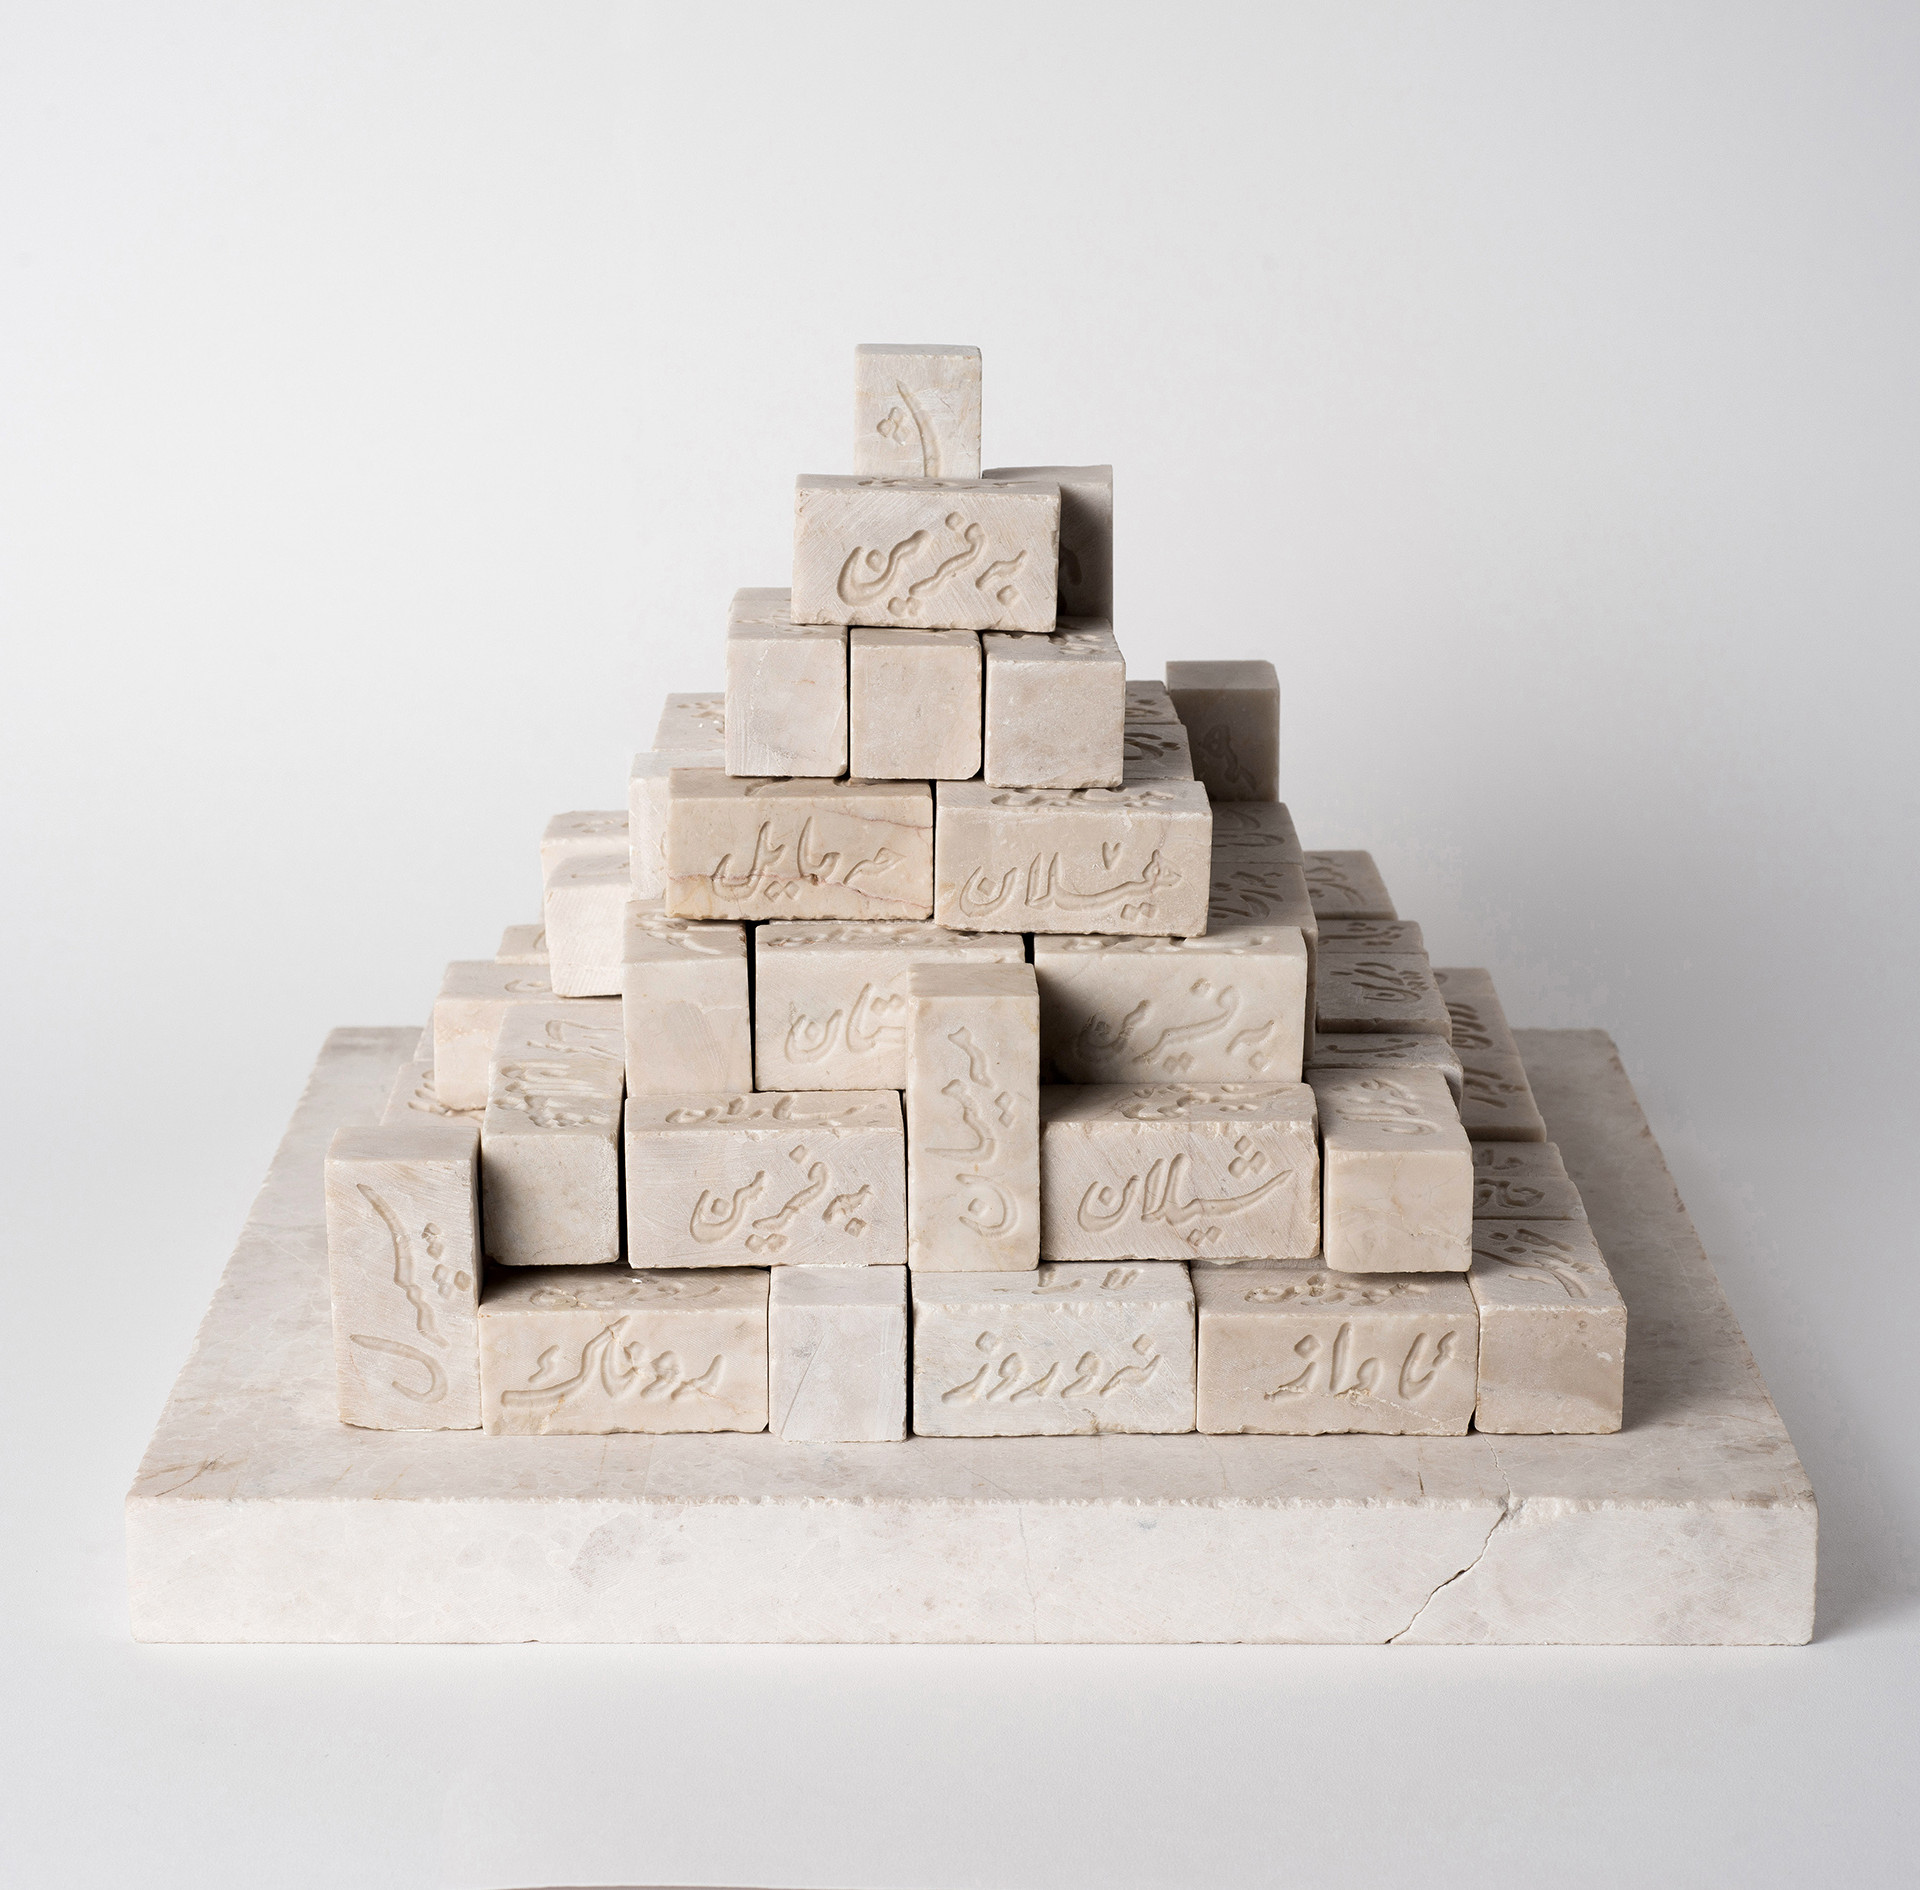 Monument to the Ordineries'2015, marble on board, 35x35x35cm.3 editions